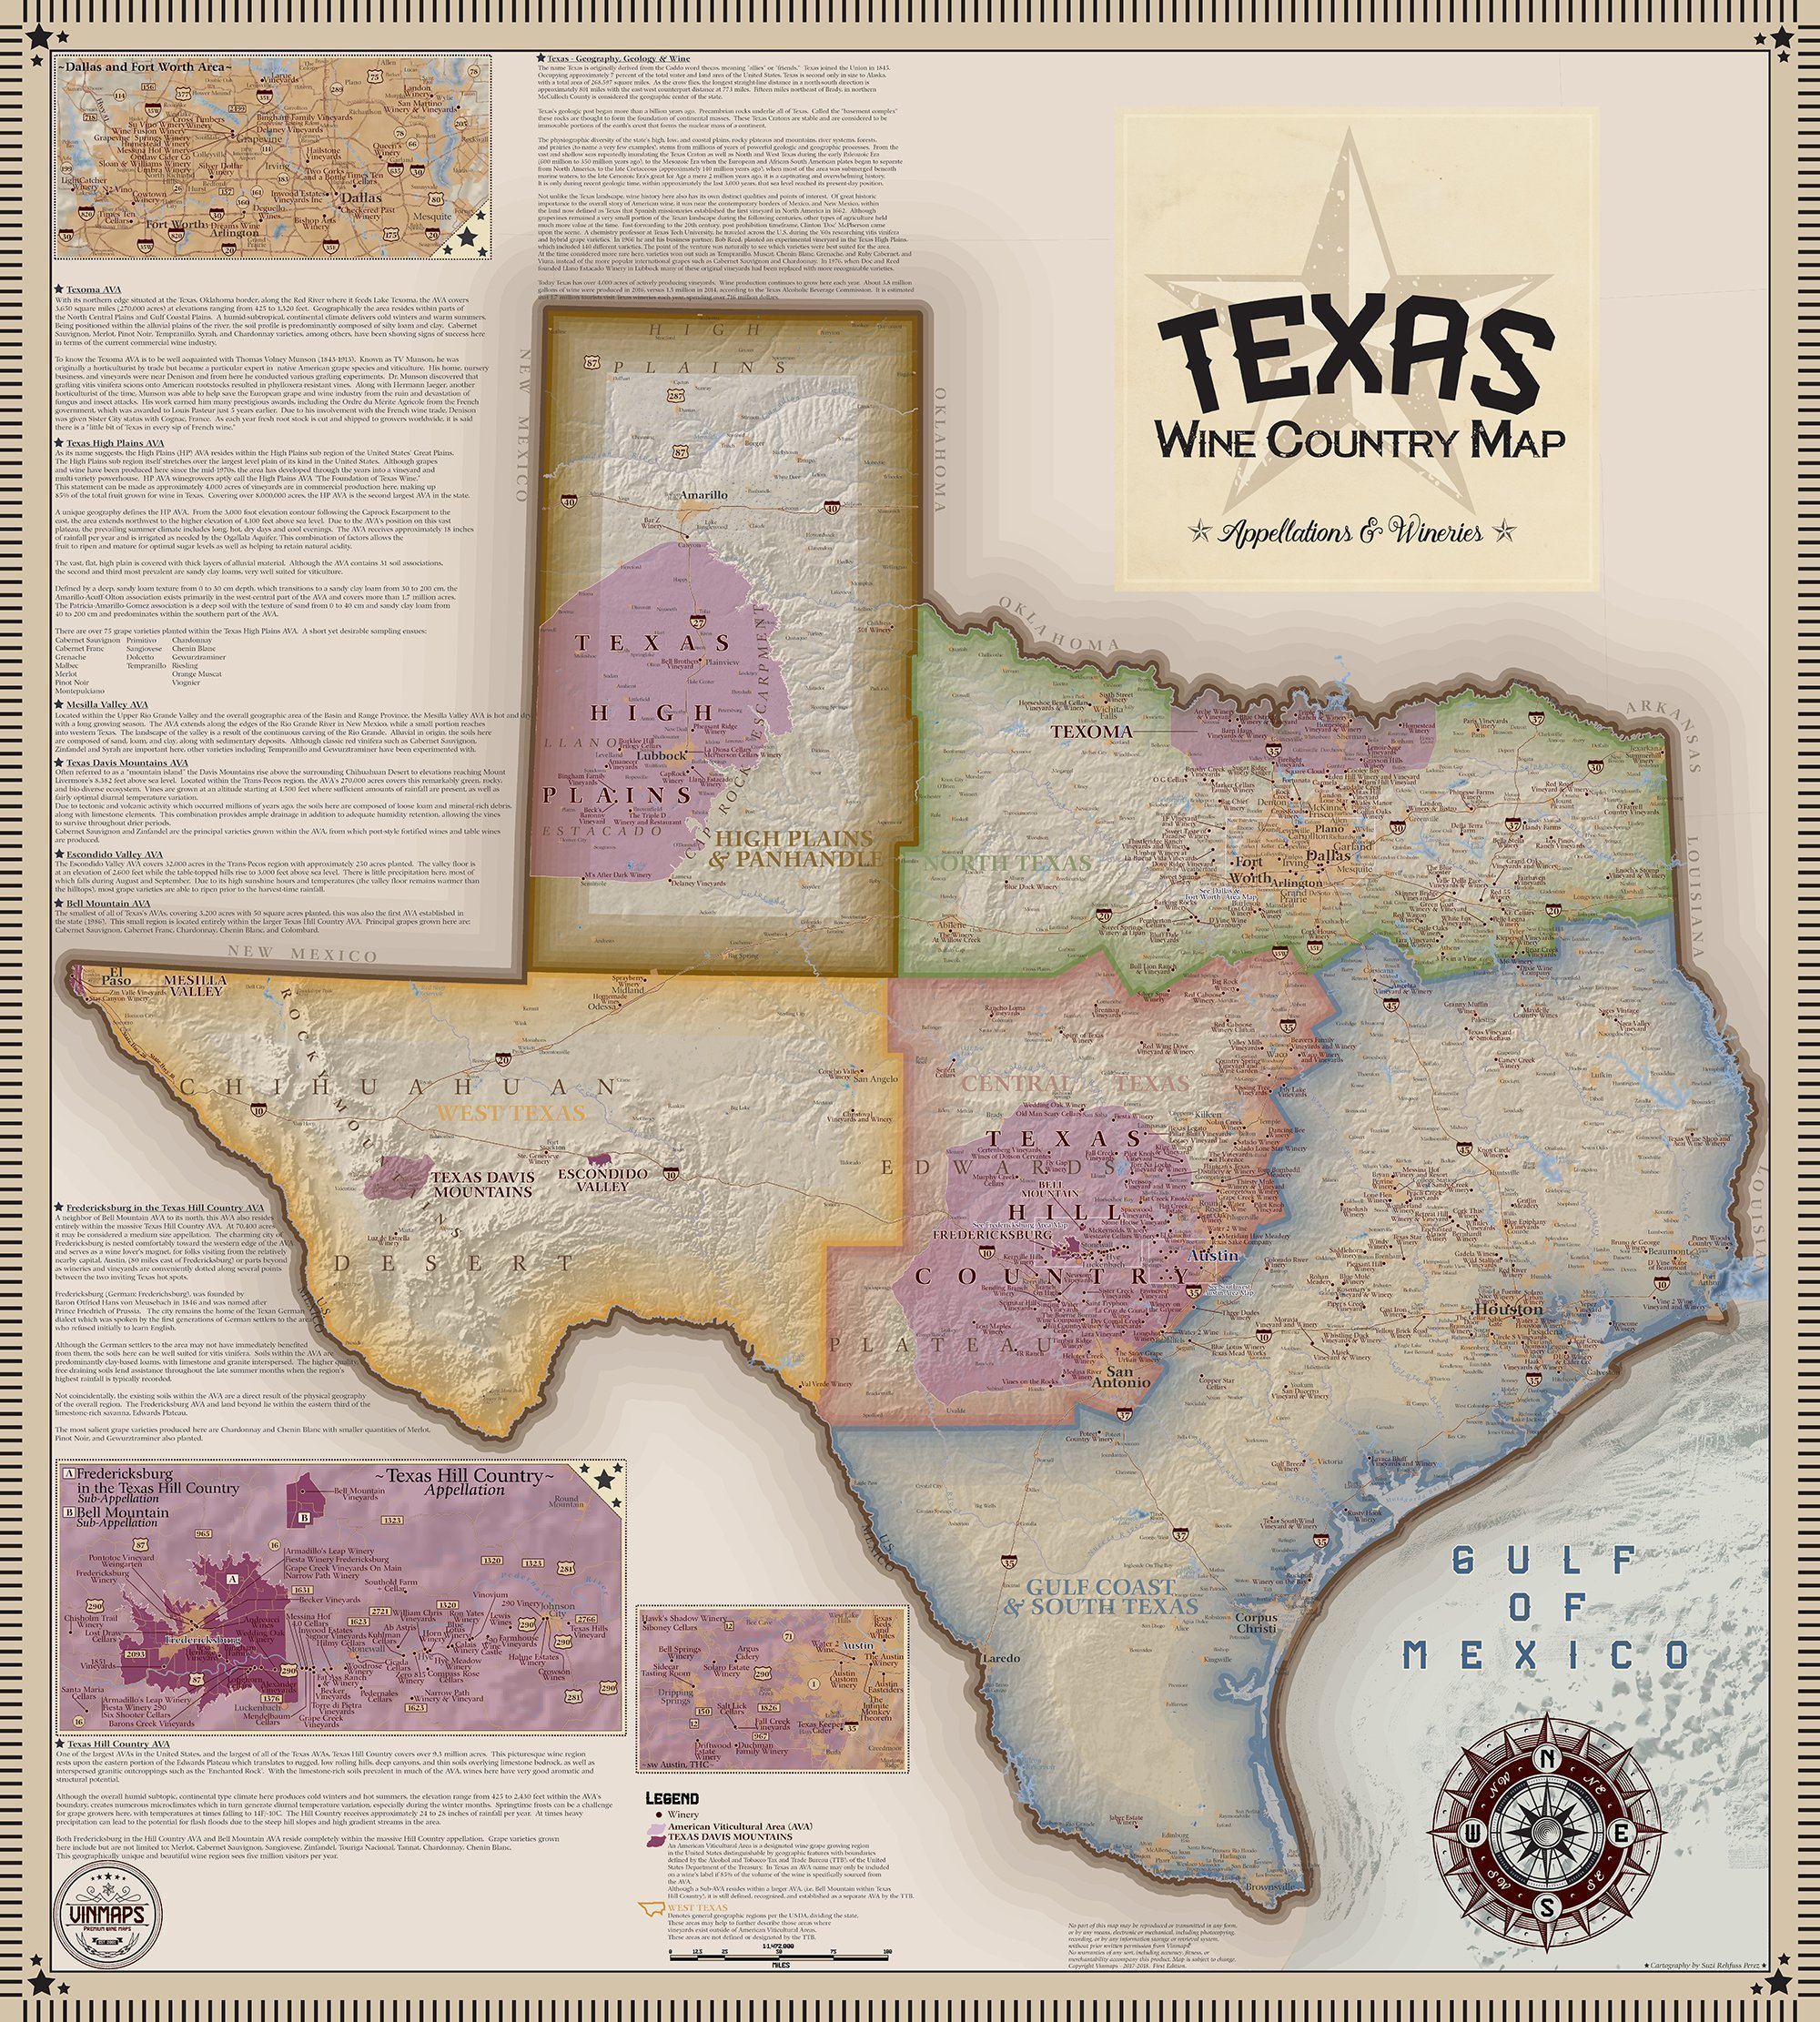 Texas Wine Country Map, Appellations & Wineries - Vinmaps® - Hill Country Texas Wineries Map